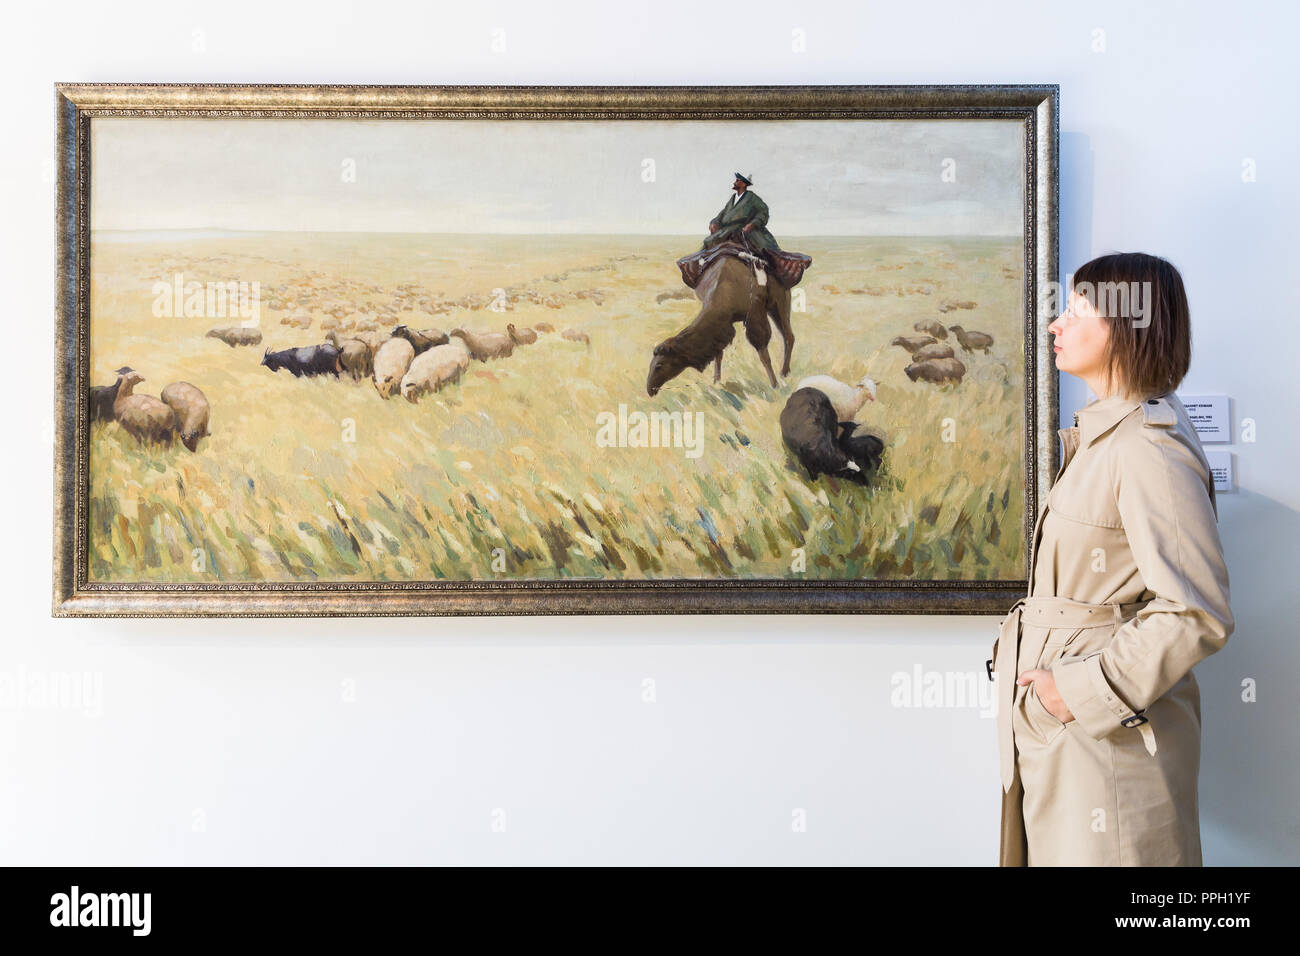 London, UK. 25th September 2018. A visitor views The Song Of The Shepherd, 1982 by Moldakhmet Kenbayev. The Focus Kazakhstan: Post-Nomadic Mind exhibition features emerging and established artists and examines Kazakh contemporary art as a form of multi-channel discourse, drawing parallel dialogues between contemporary artists, their Soviet predecessors, and the newly termed subject matter of post-nomadism. The exhibition runs until 16th October 2018. Credit: Vickie Flores/Alamy Live News - Stock Image